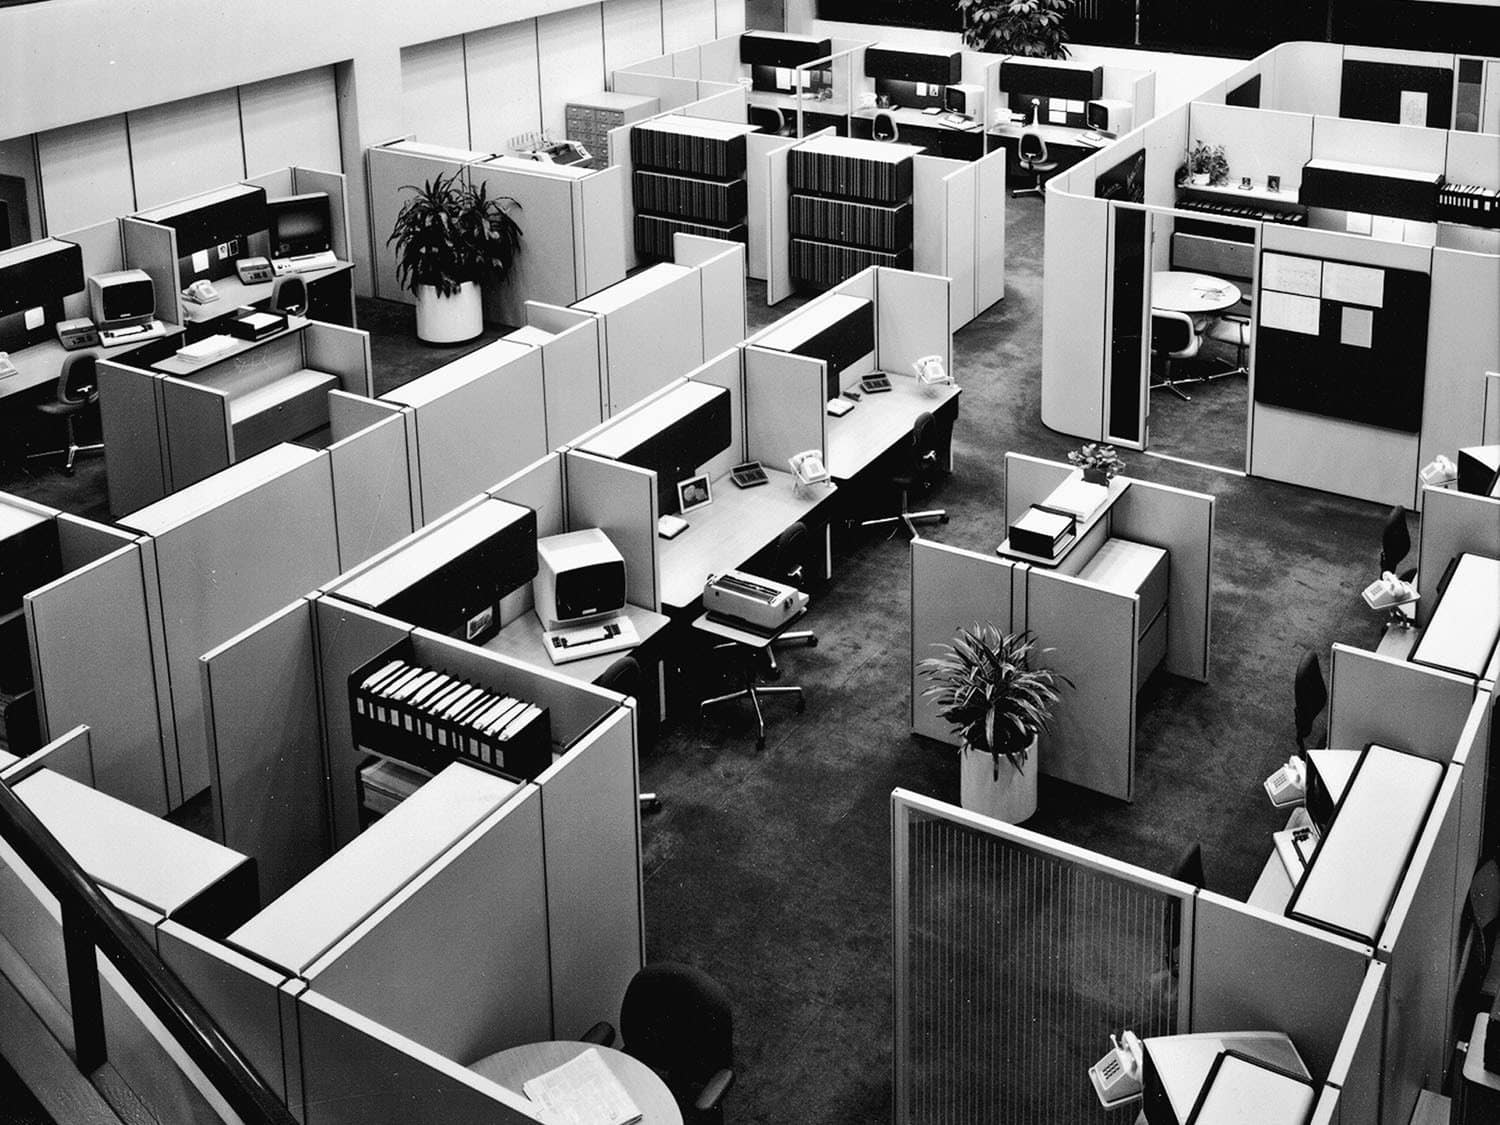 The stereotypical office cube farm environment has been a fertile source of humor, inspiring the Dilbert comic strip, the movie Office Space and both the British and US versions of the television series The Office. But Hermann Miller's 1967 Action Office II by designer Robert Probst was well received as a positive step when it was new. In time however, space planners crammed more and more of the units into offices, as shown in this photo.